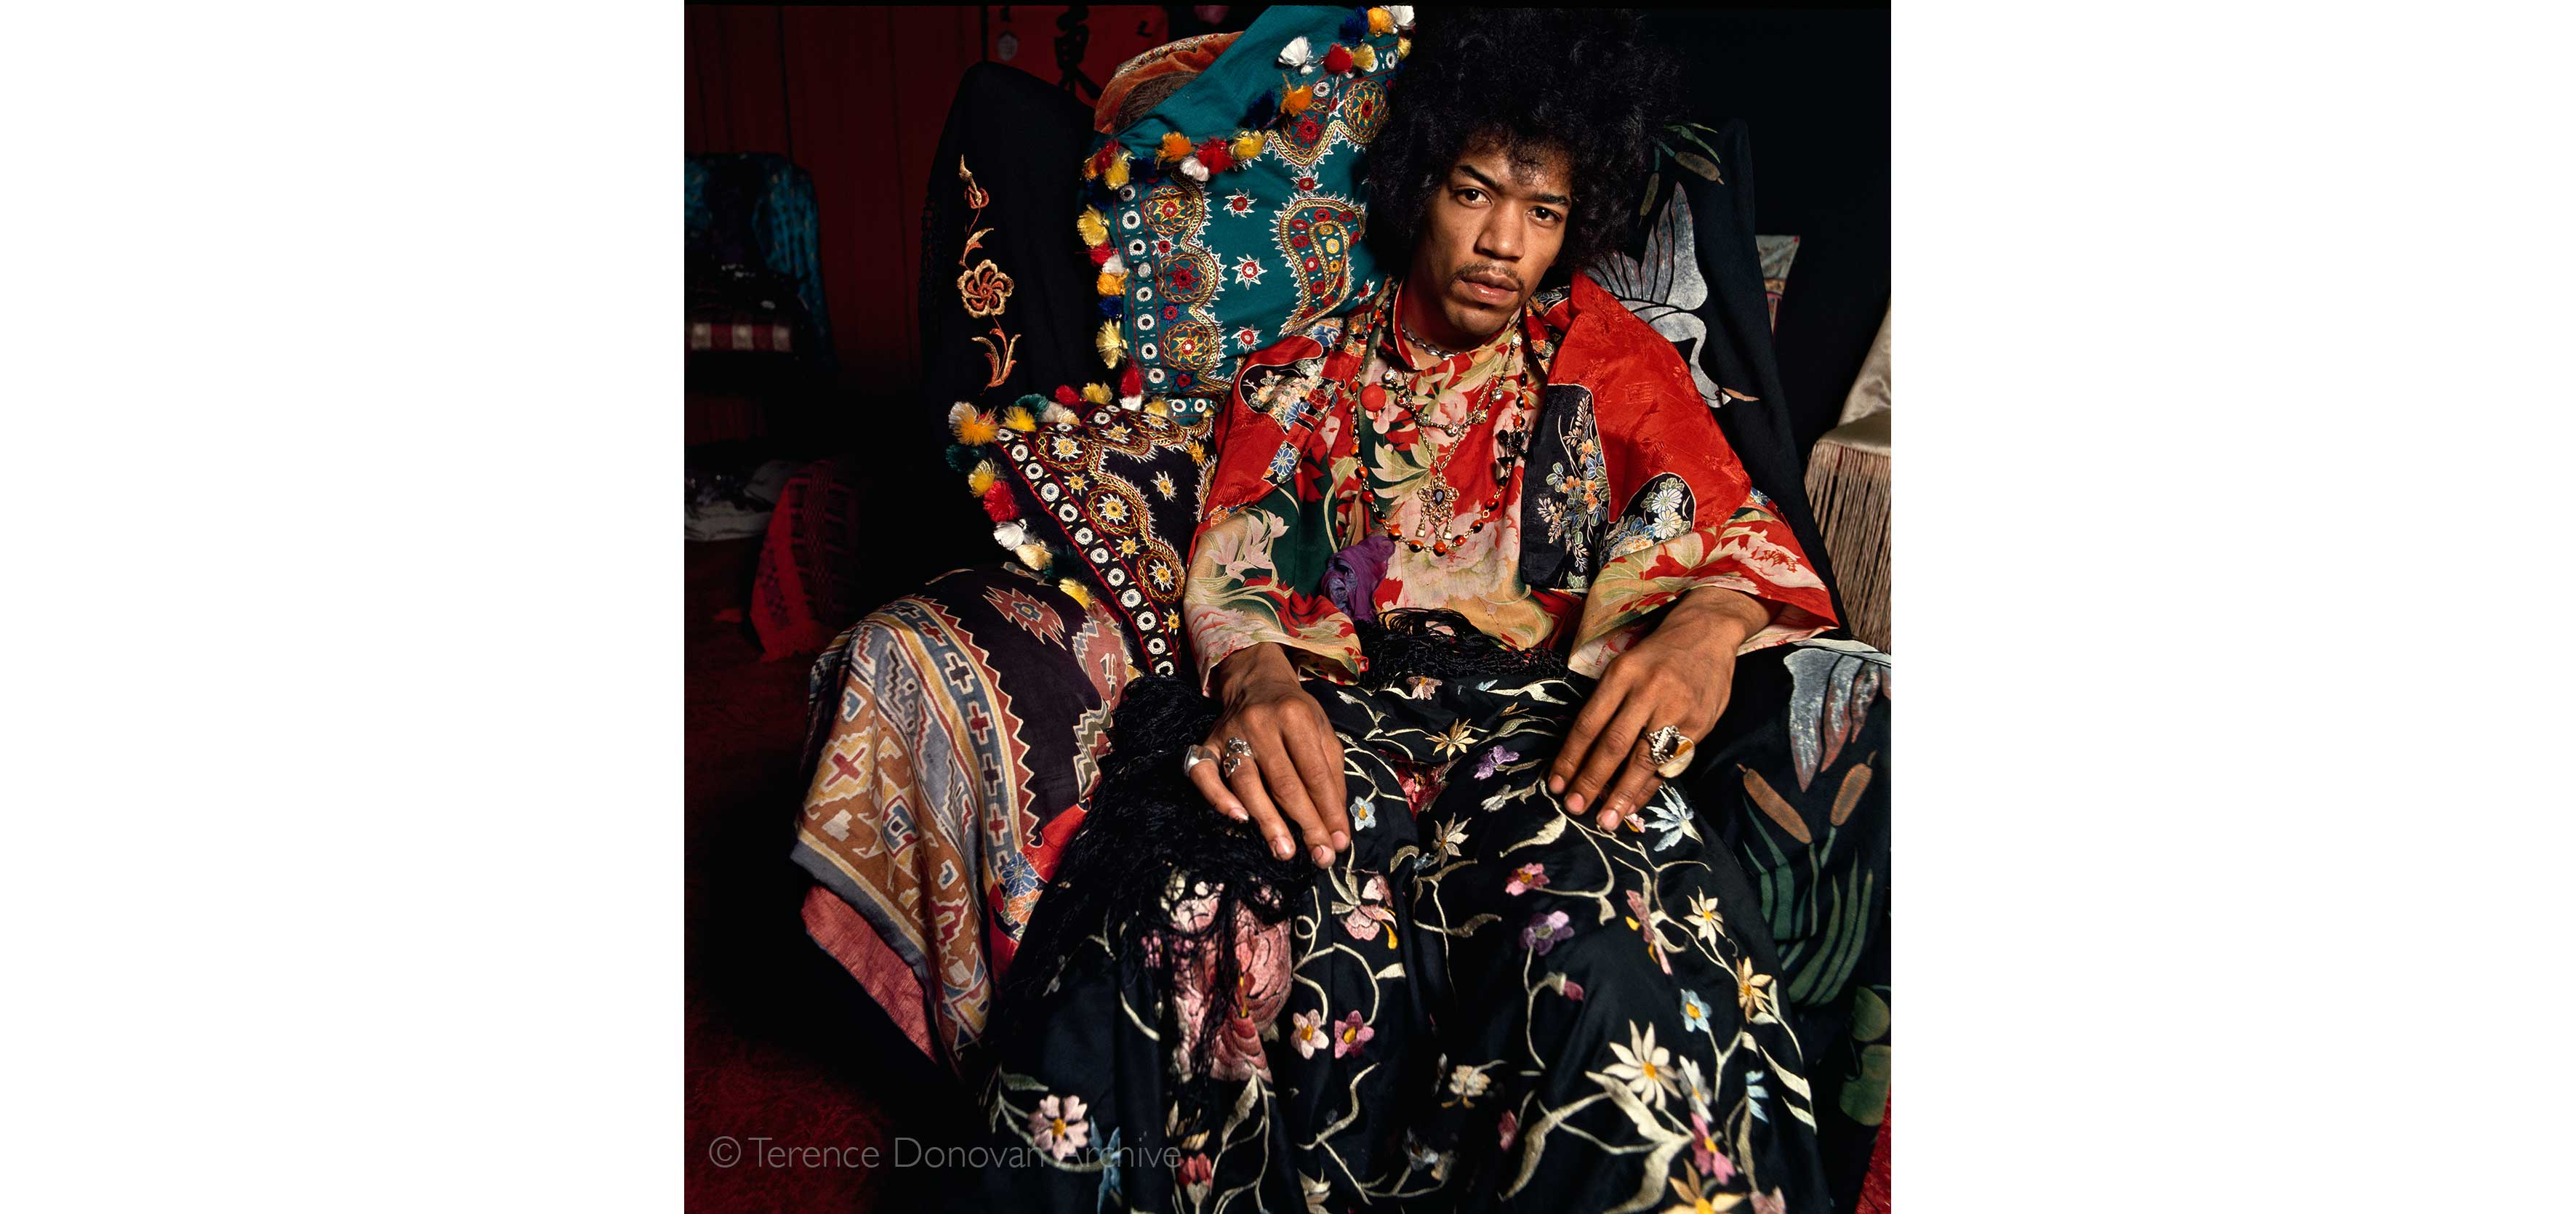 Jimi Hendrix photographed in his London flat for the Sunday Times, August 1967